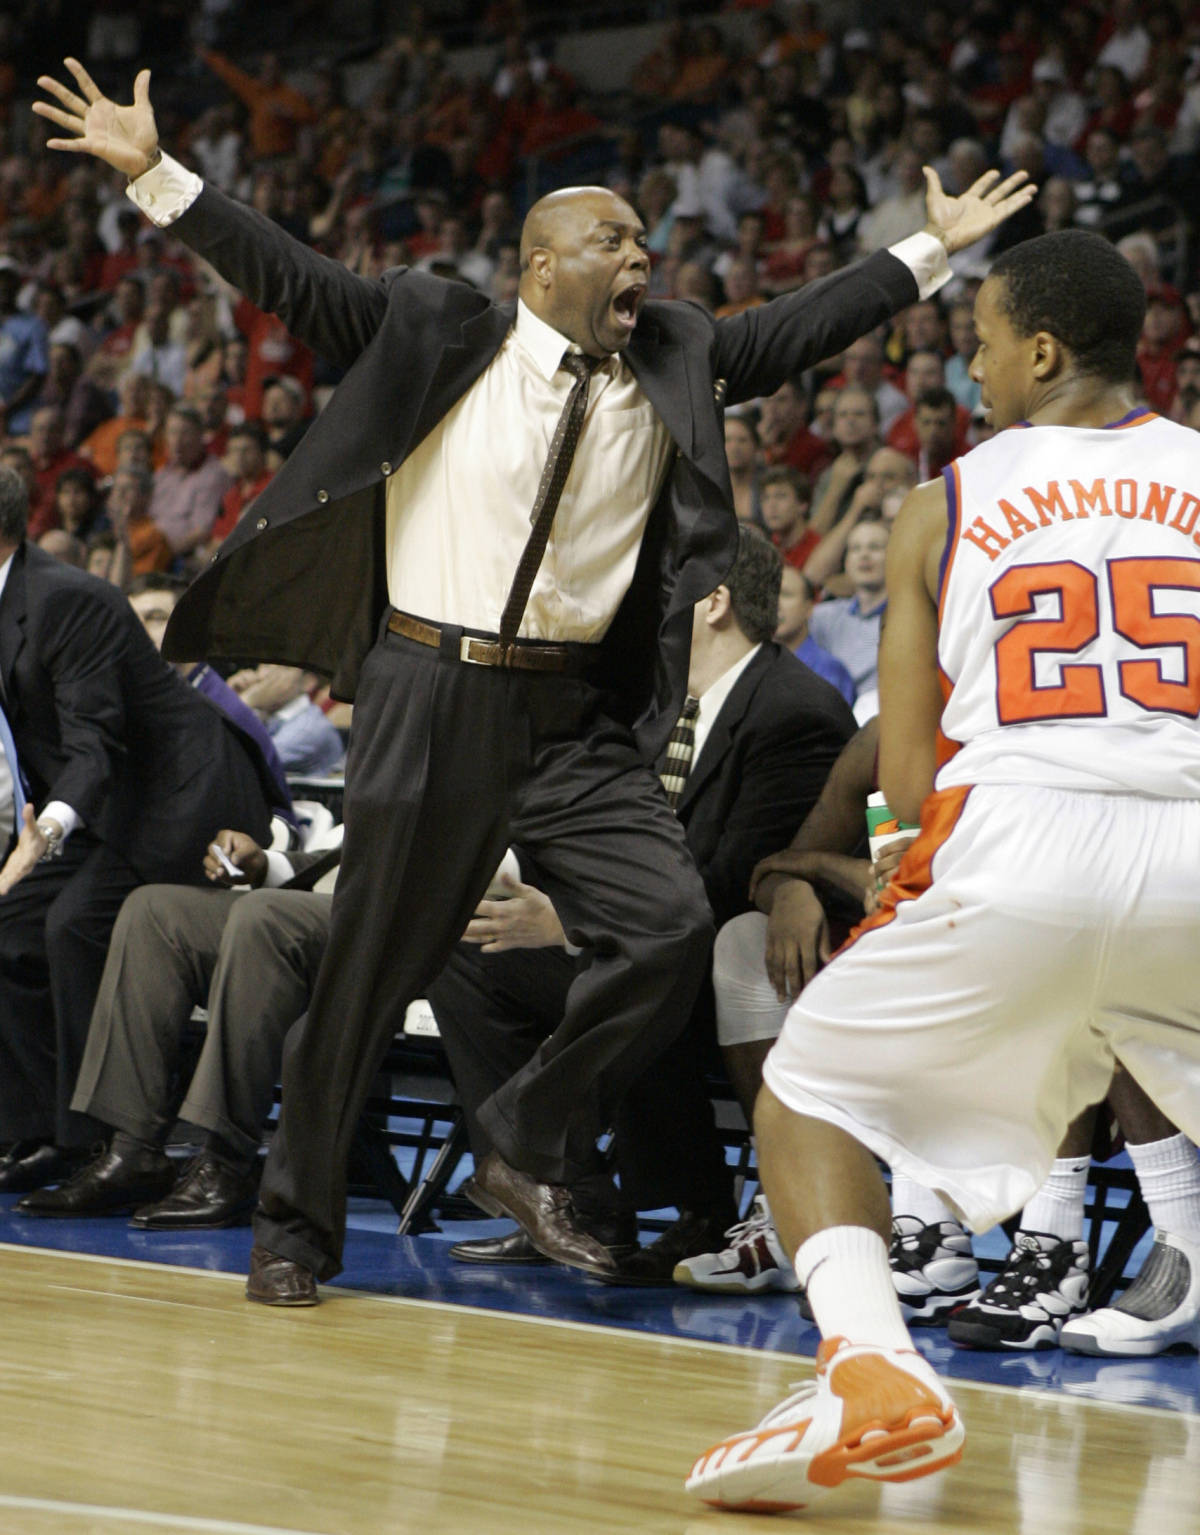 Florida State coach Leonard Hamilton, left, reacts to a play during a first round game at the Men's Atlantic Coast Conference basketball tournament against Clemson in Tampa, Fla., Thursday, March 8, 2007. Florida State edged Clemsom 67-66. (AP Photo/David J. Phillip)